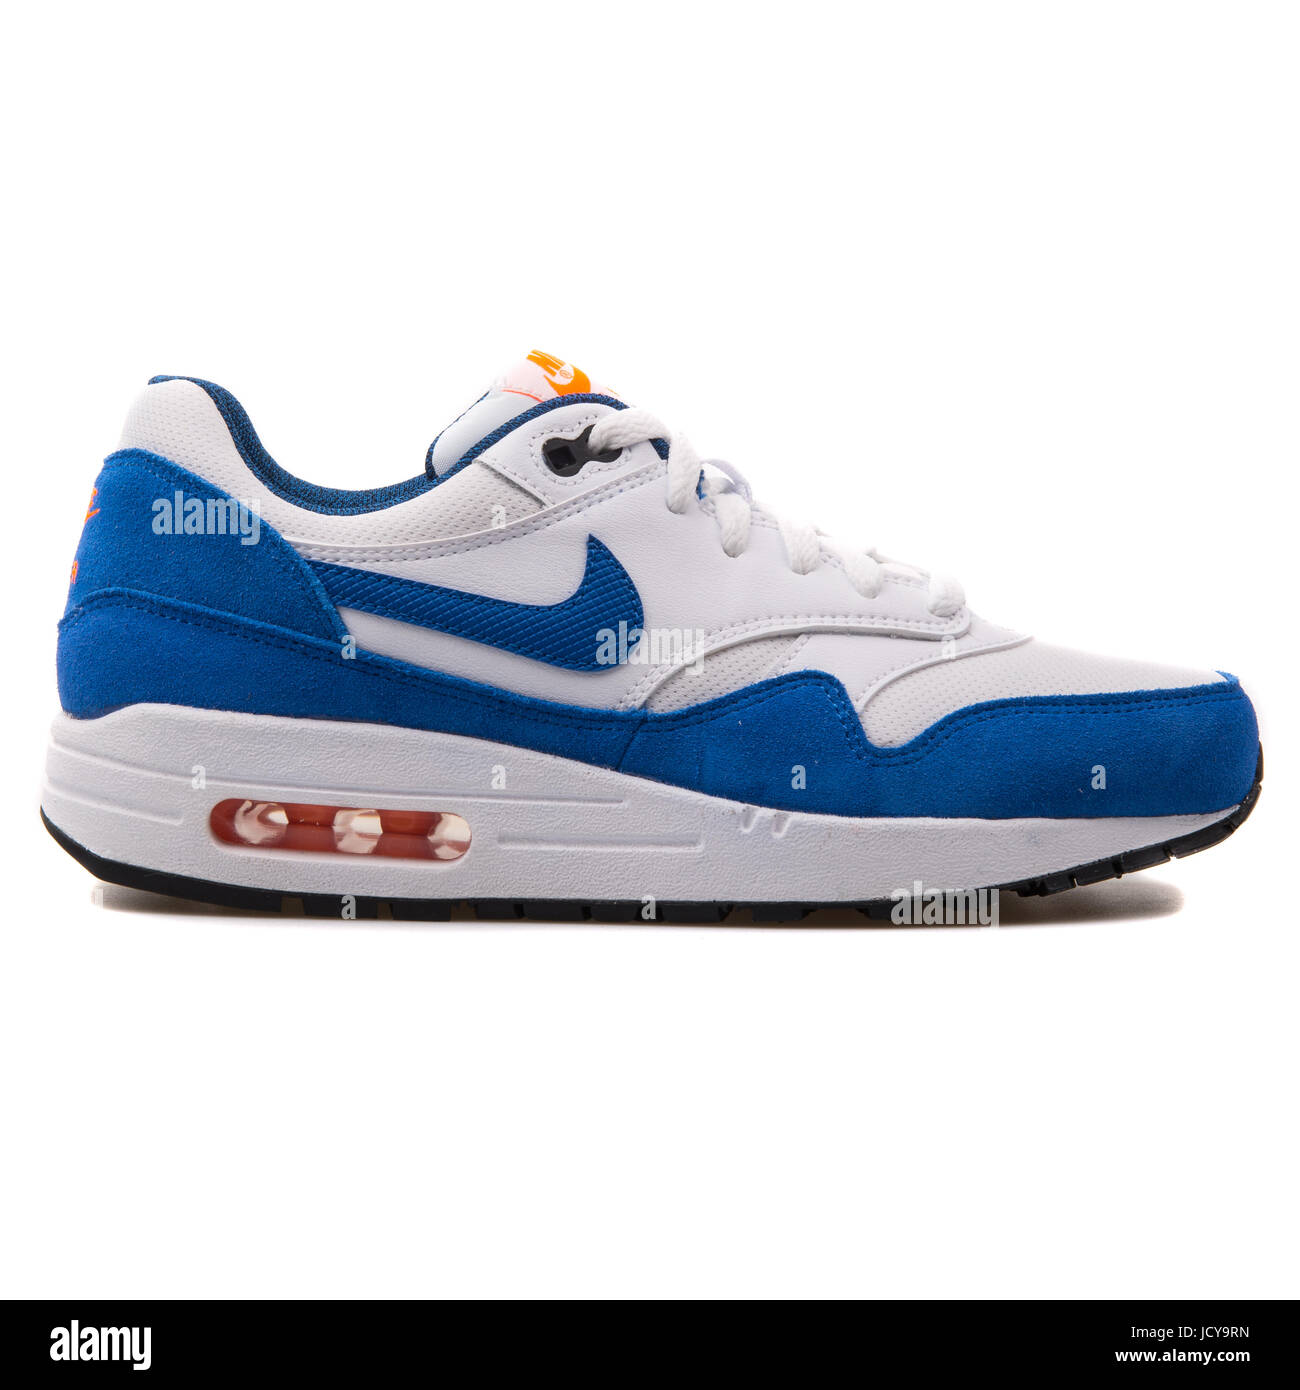 Nike Air Max 1 (GS) blanco y azul royal Youth's calzados